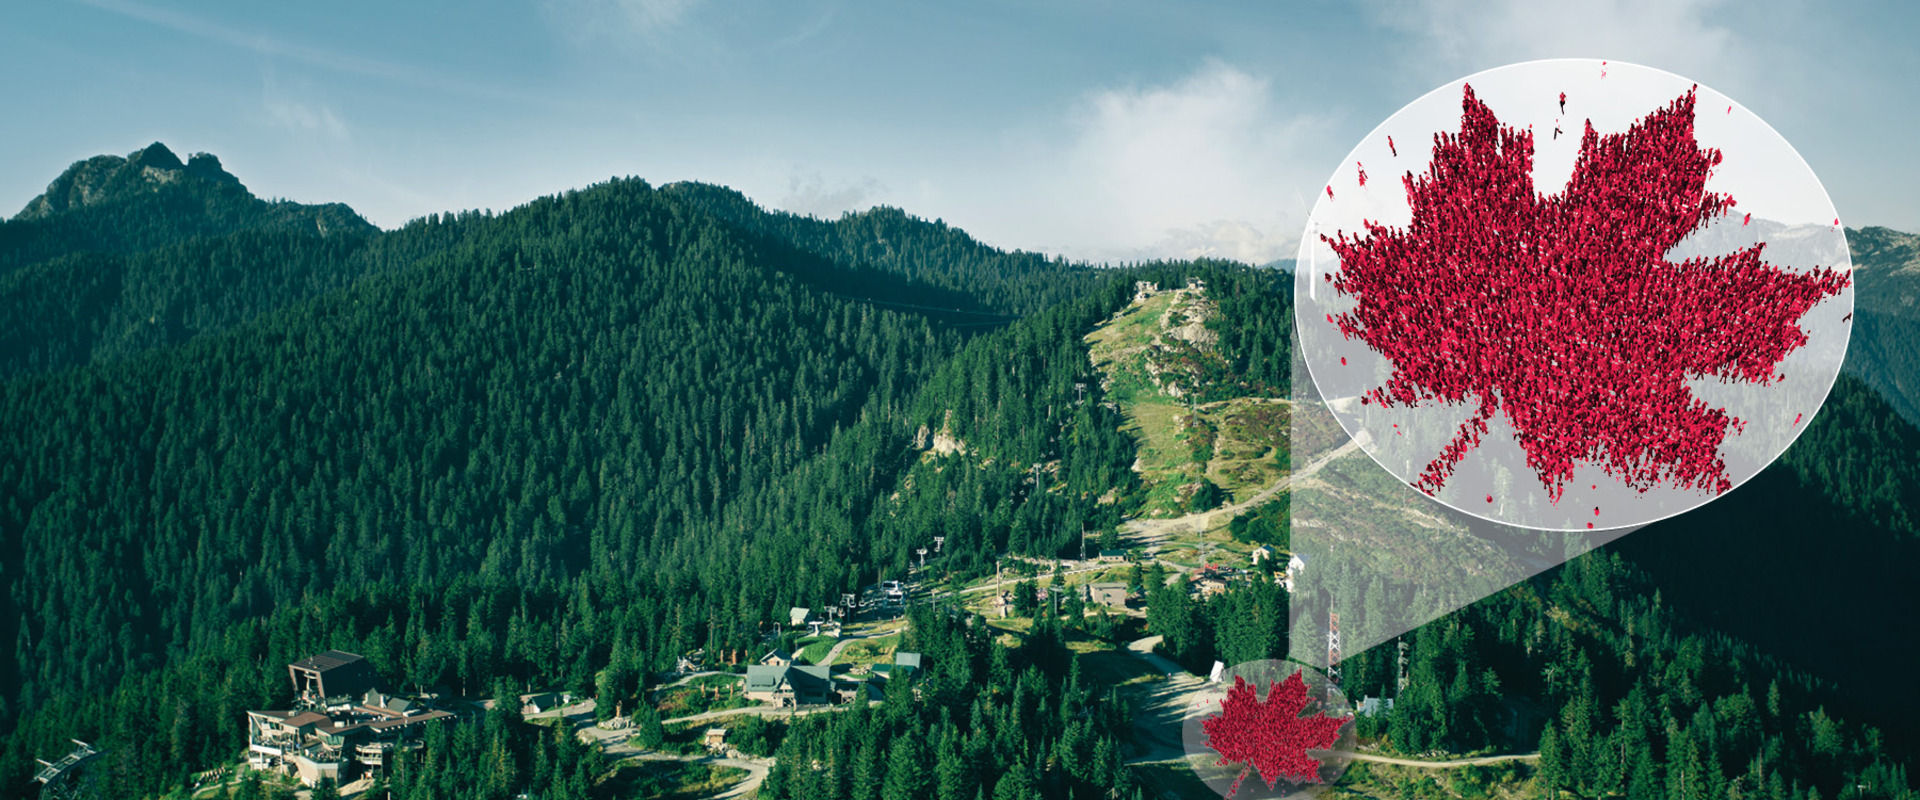 a06b1677b58 Canada Day at the Peak of Vancouver | Grouse Mountain - The Peak of ...